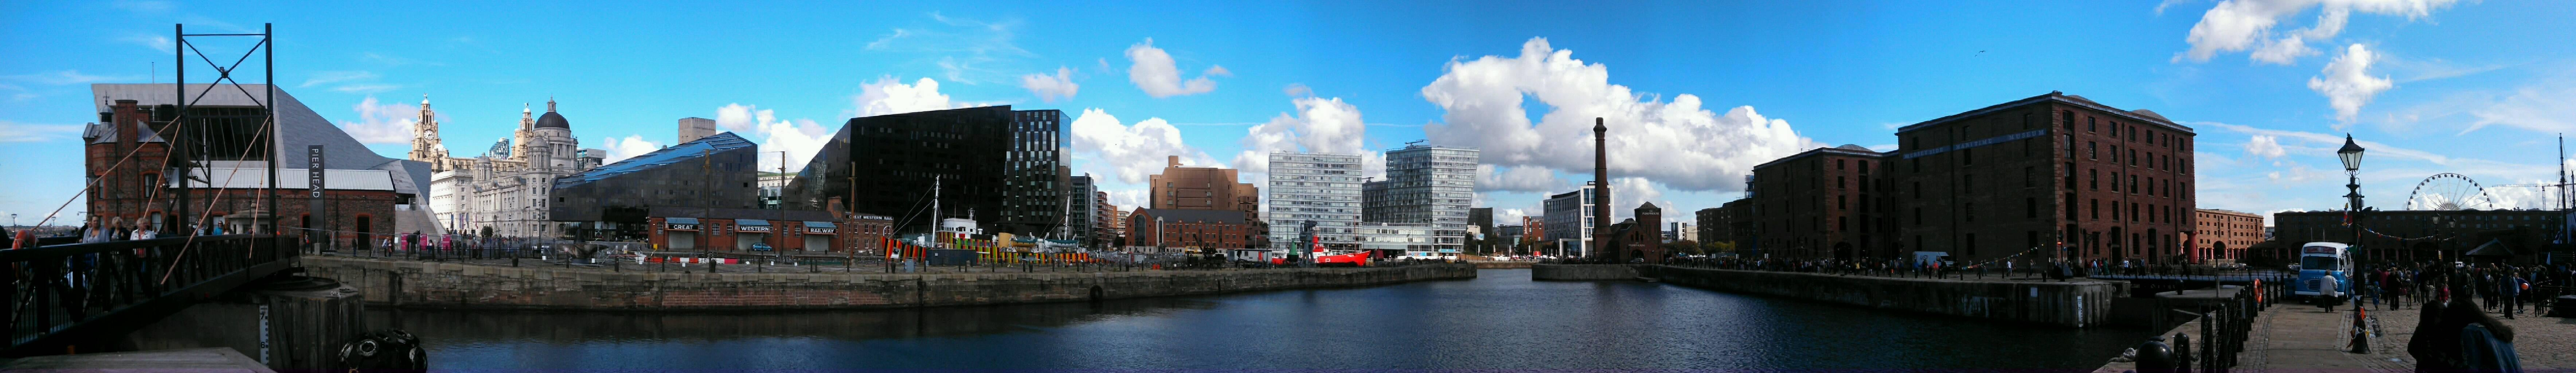 Panorámica en Royal Albert Dock